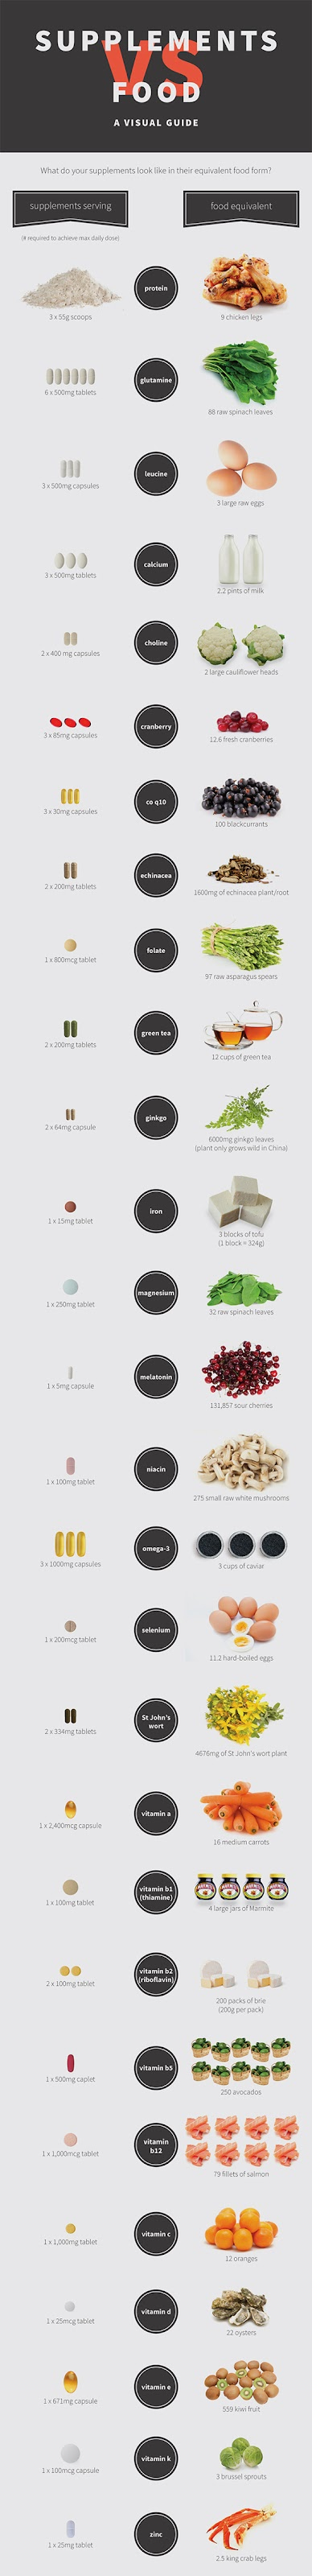 Skinny Diva Diet: Supplements vs. Food Visual Guide [Infographic]